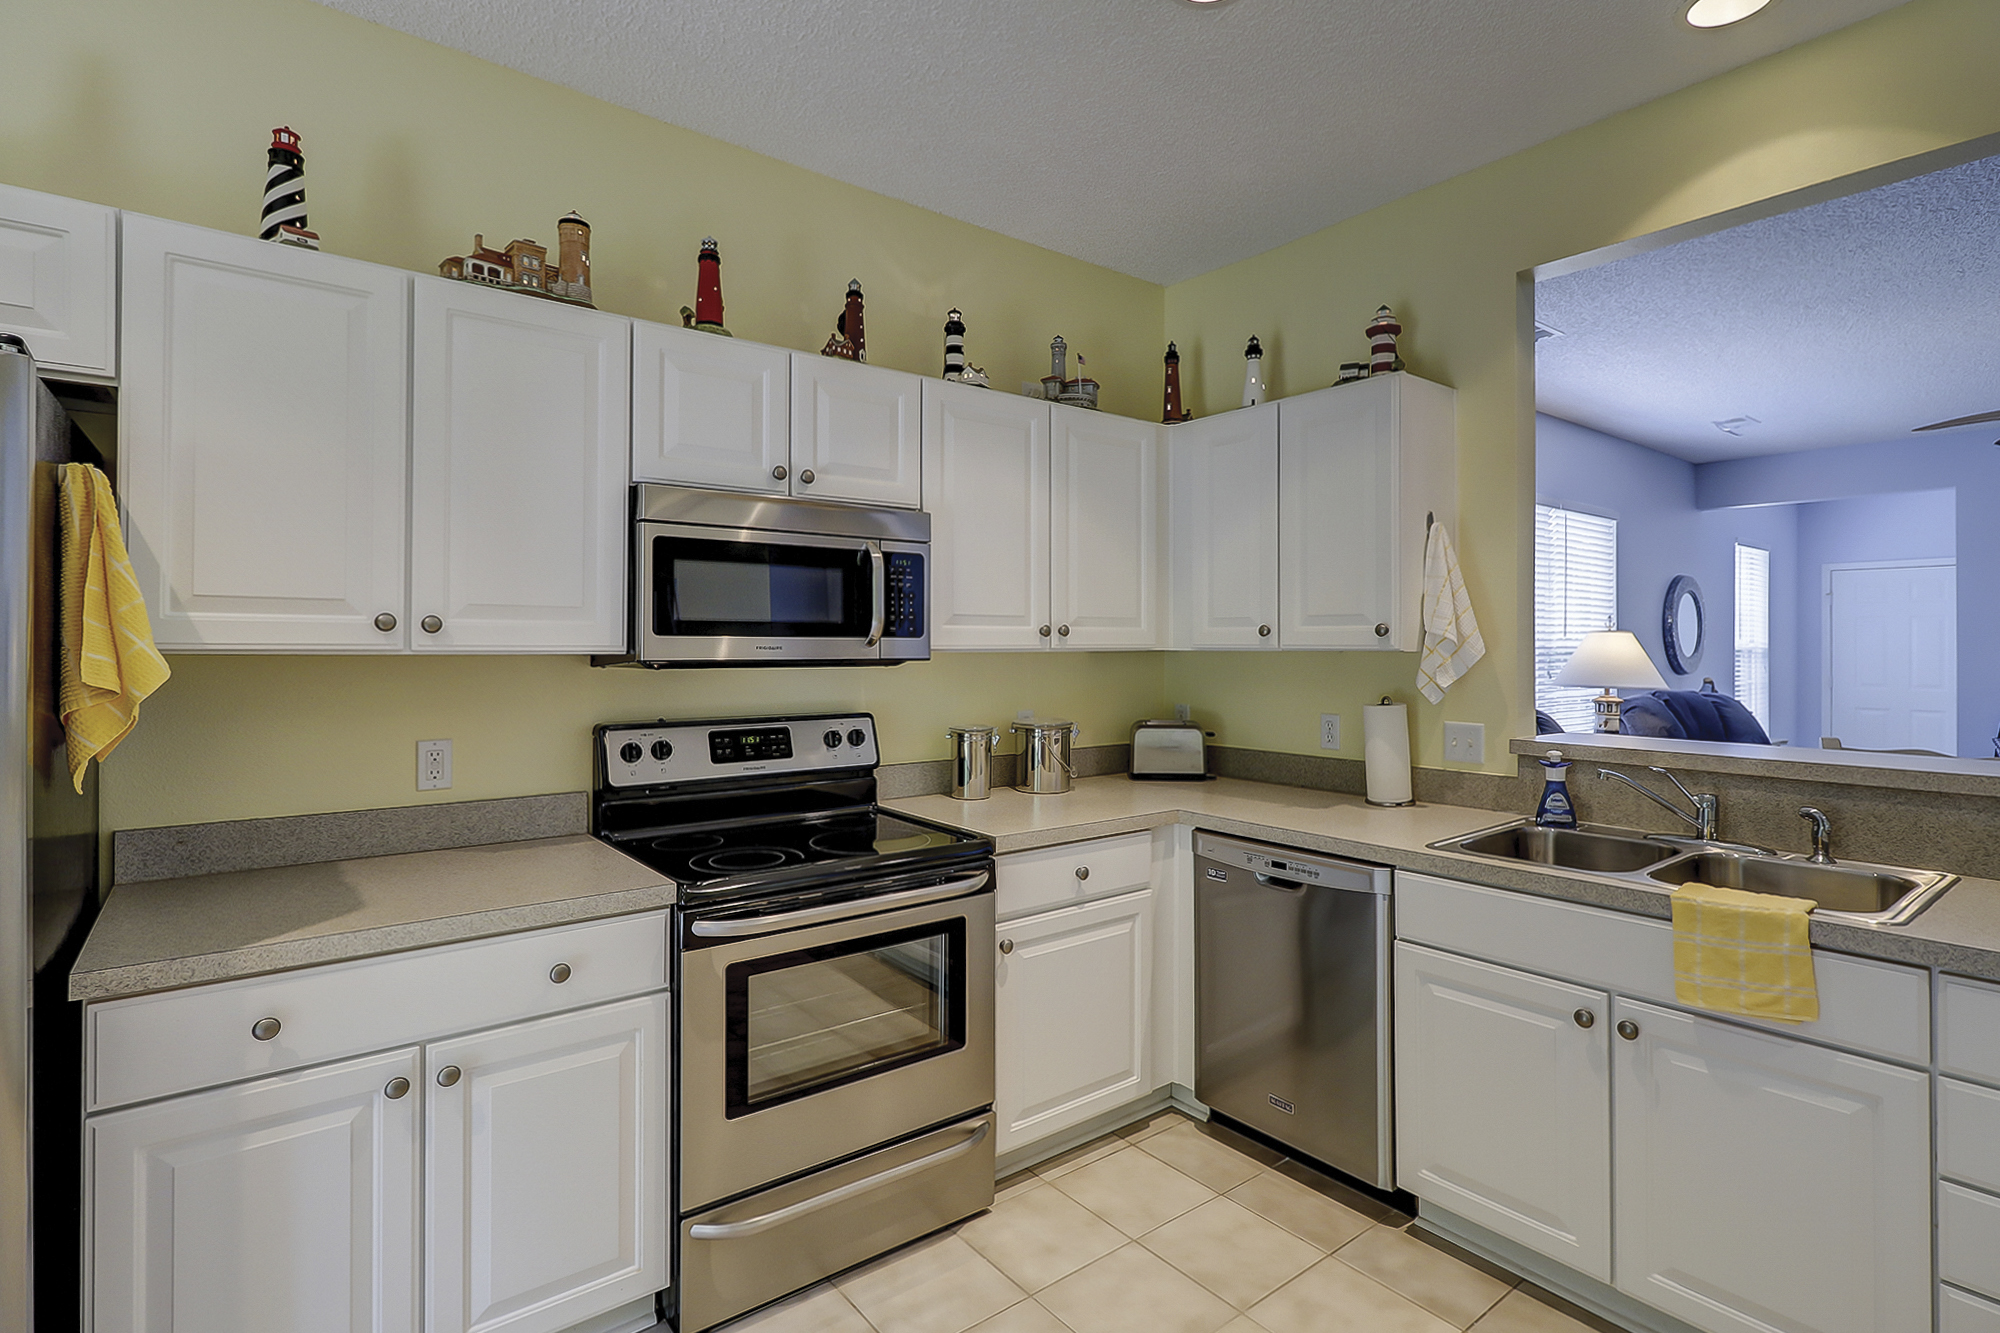 Brand New Stainless Steel Appliances in Sun City Home For Sale